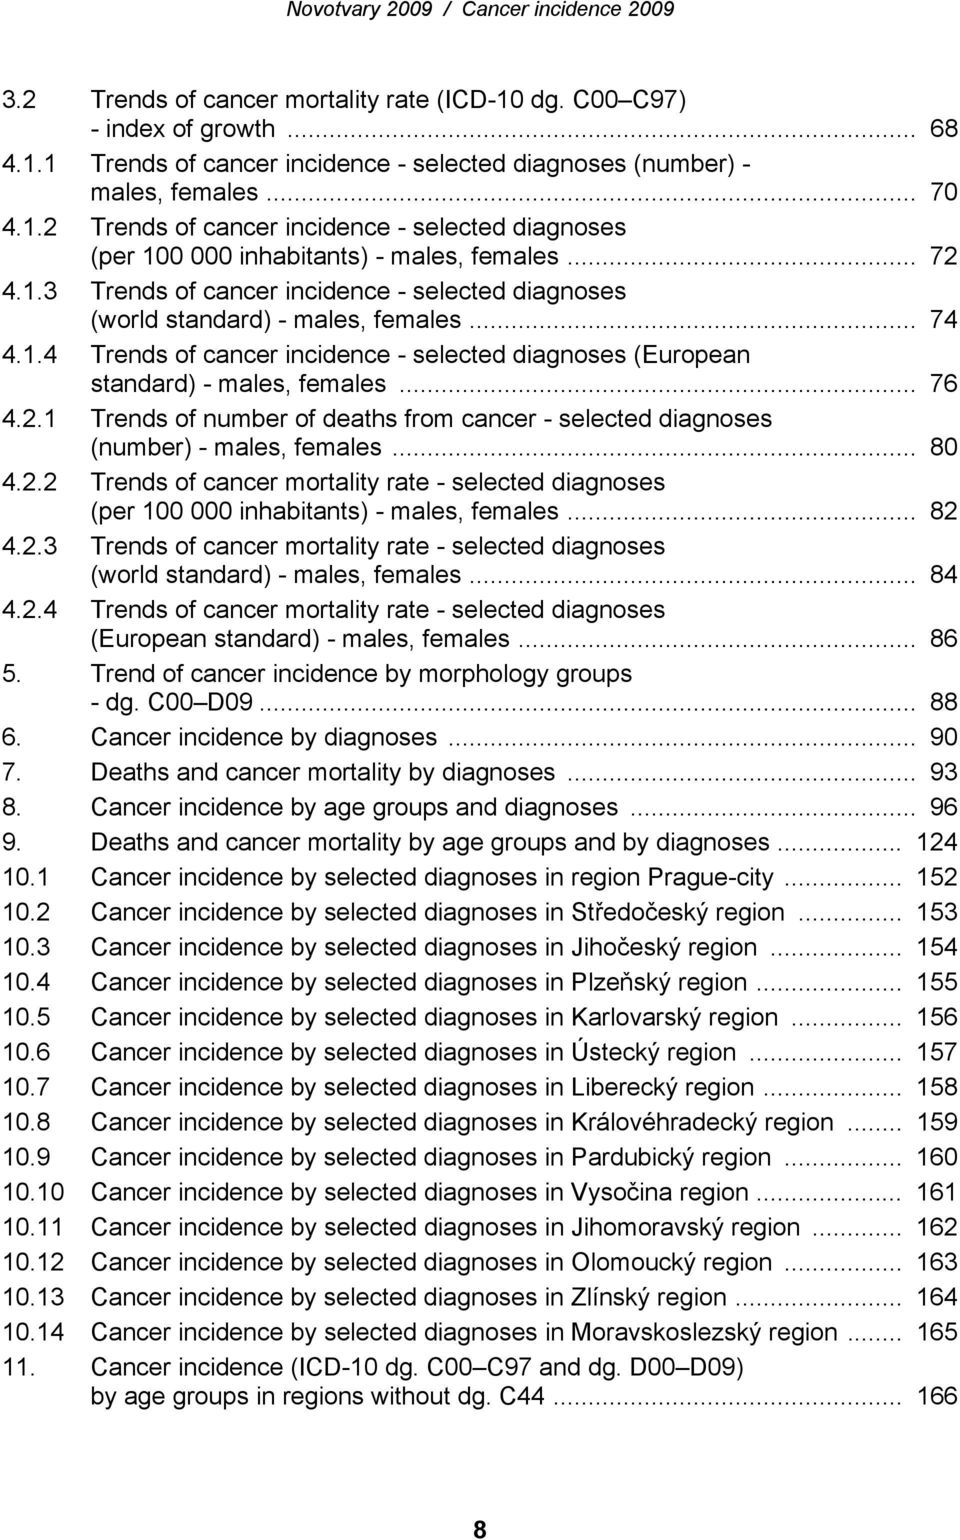 .. 80 4.2.2 Trends of cancer mortality rate - selected diagnoses (per 100 000 inhabitants) - males, females... 82 4.2.3 Trends of cancer mortality rate - selected diagnoses (world ) - males, females.